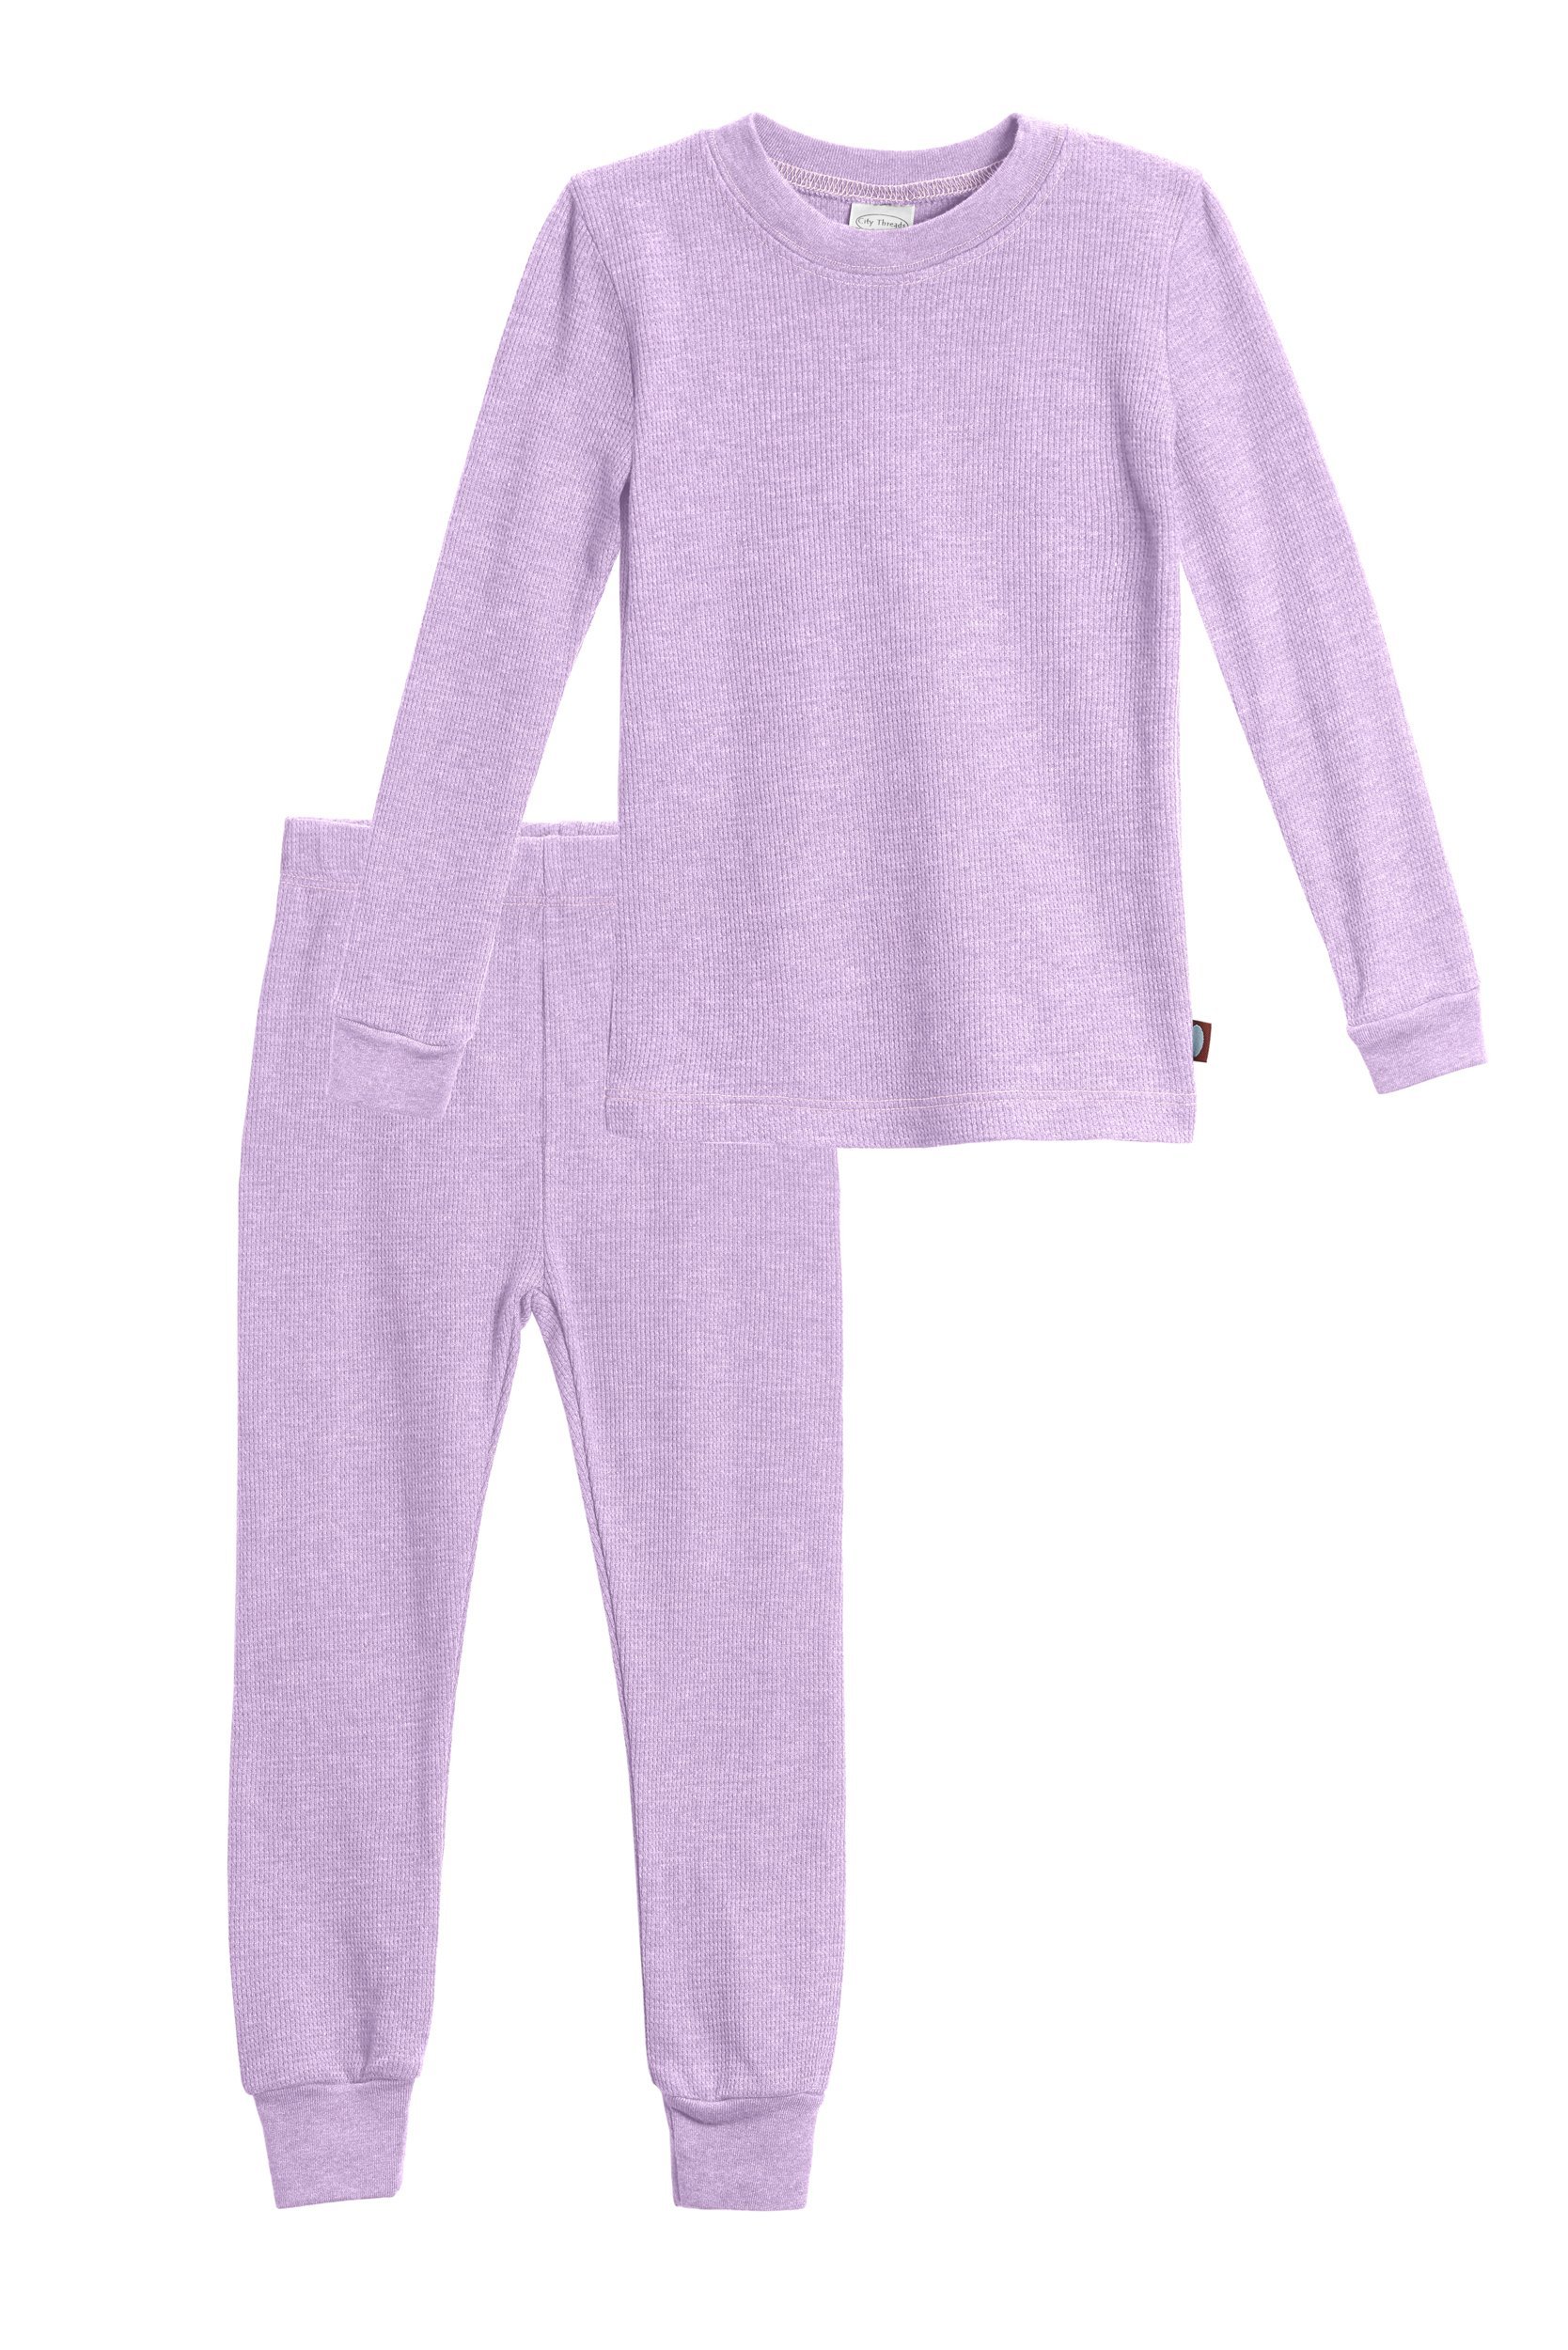 City Threads Baby Girls Thermal Underwear Set Perfect for Sensitive Skin SPD Sensory Friendly, Lavender- 12/18M by City Threads